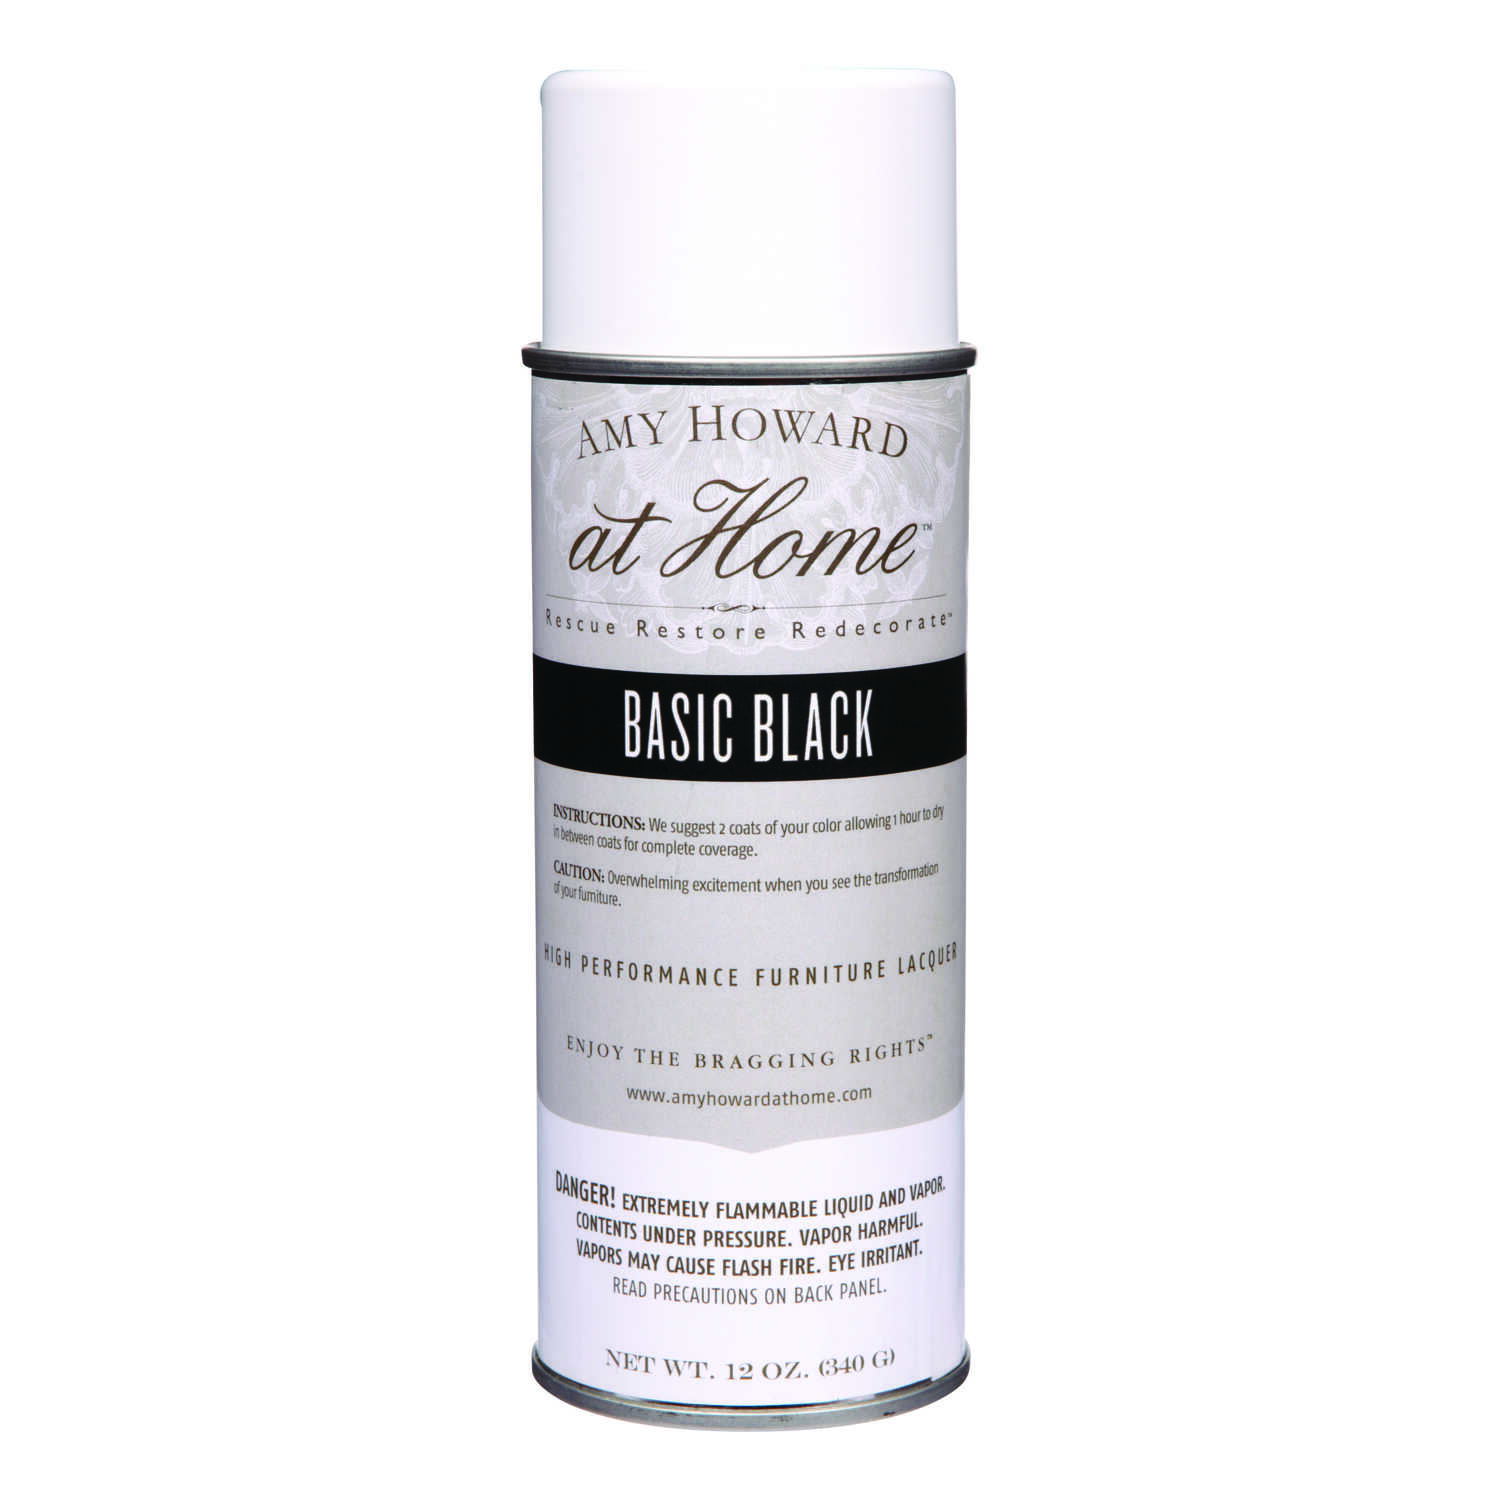 Amy Howard at Home  Gloss  High Performance Furniture Lacquer Spray  Basic Black  12 oz.